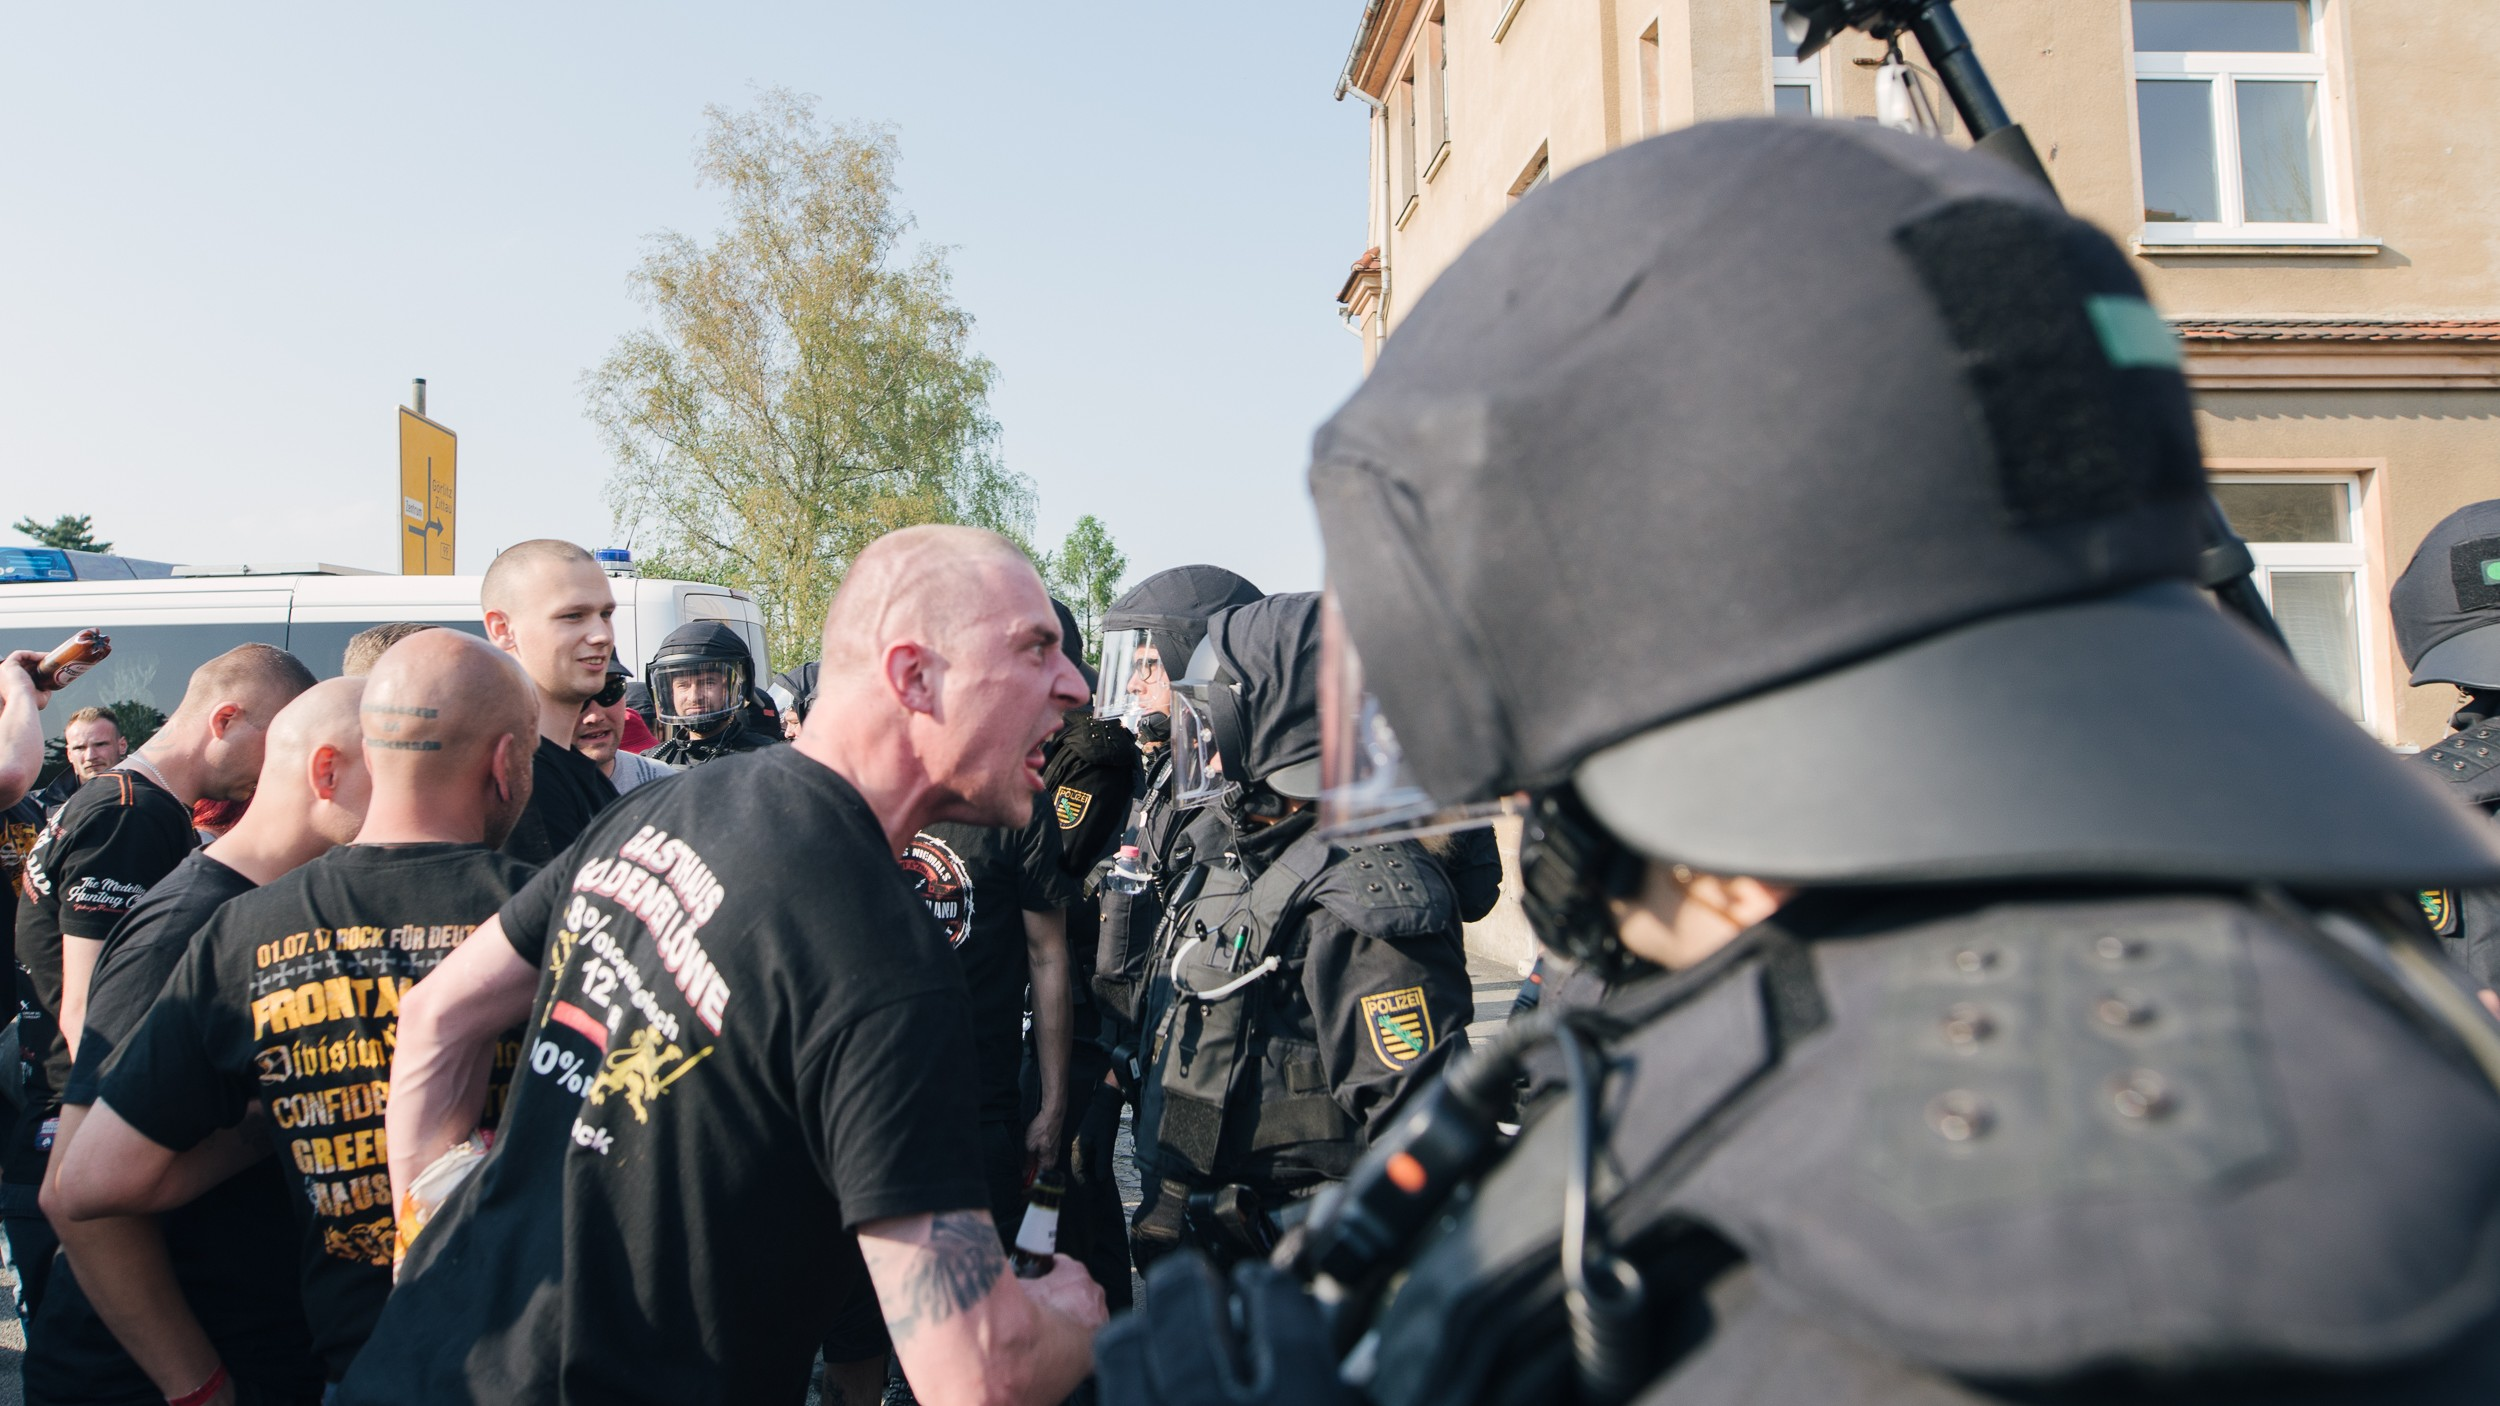 German neo-Nazis are trying to go mainstream with MMA and music festivals